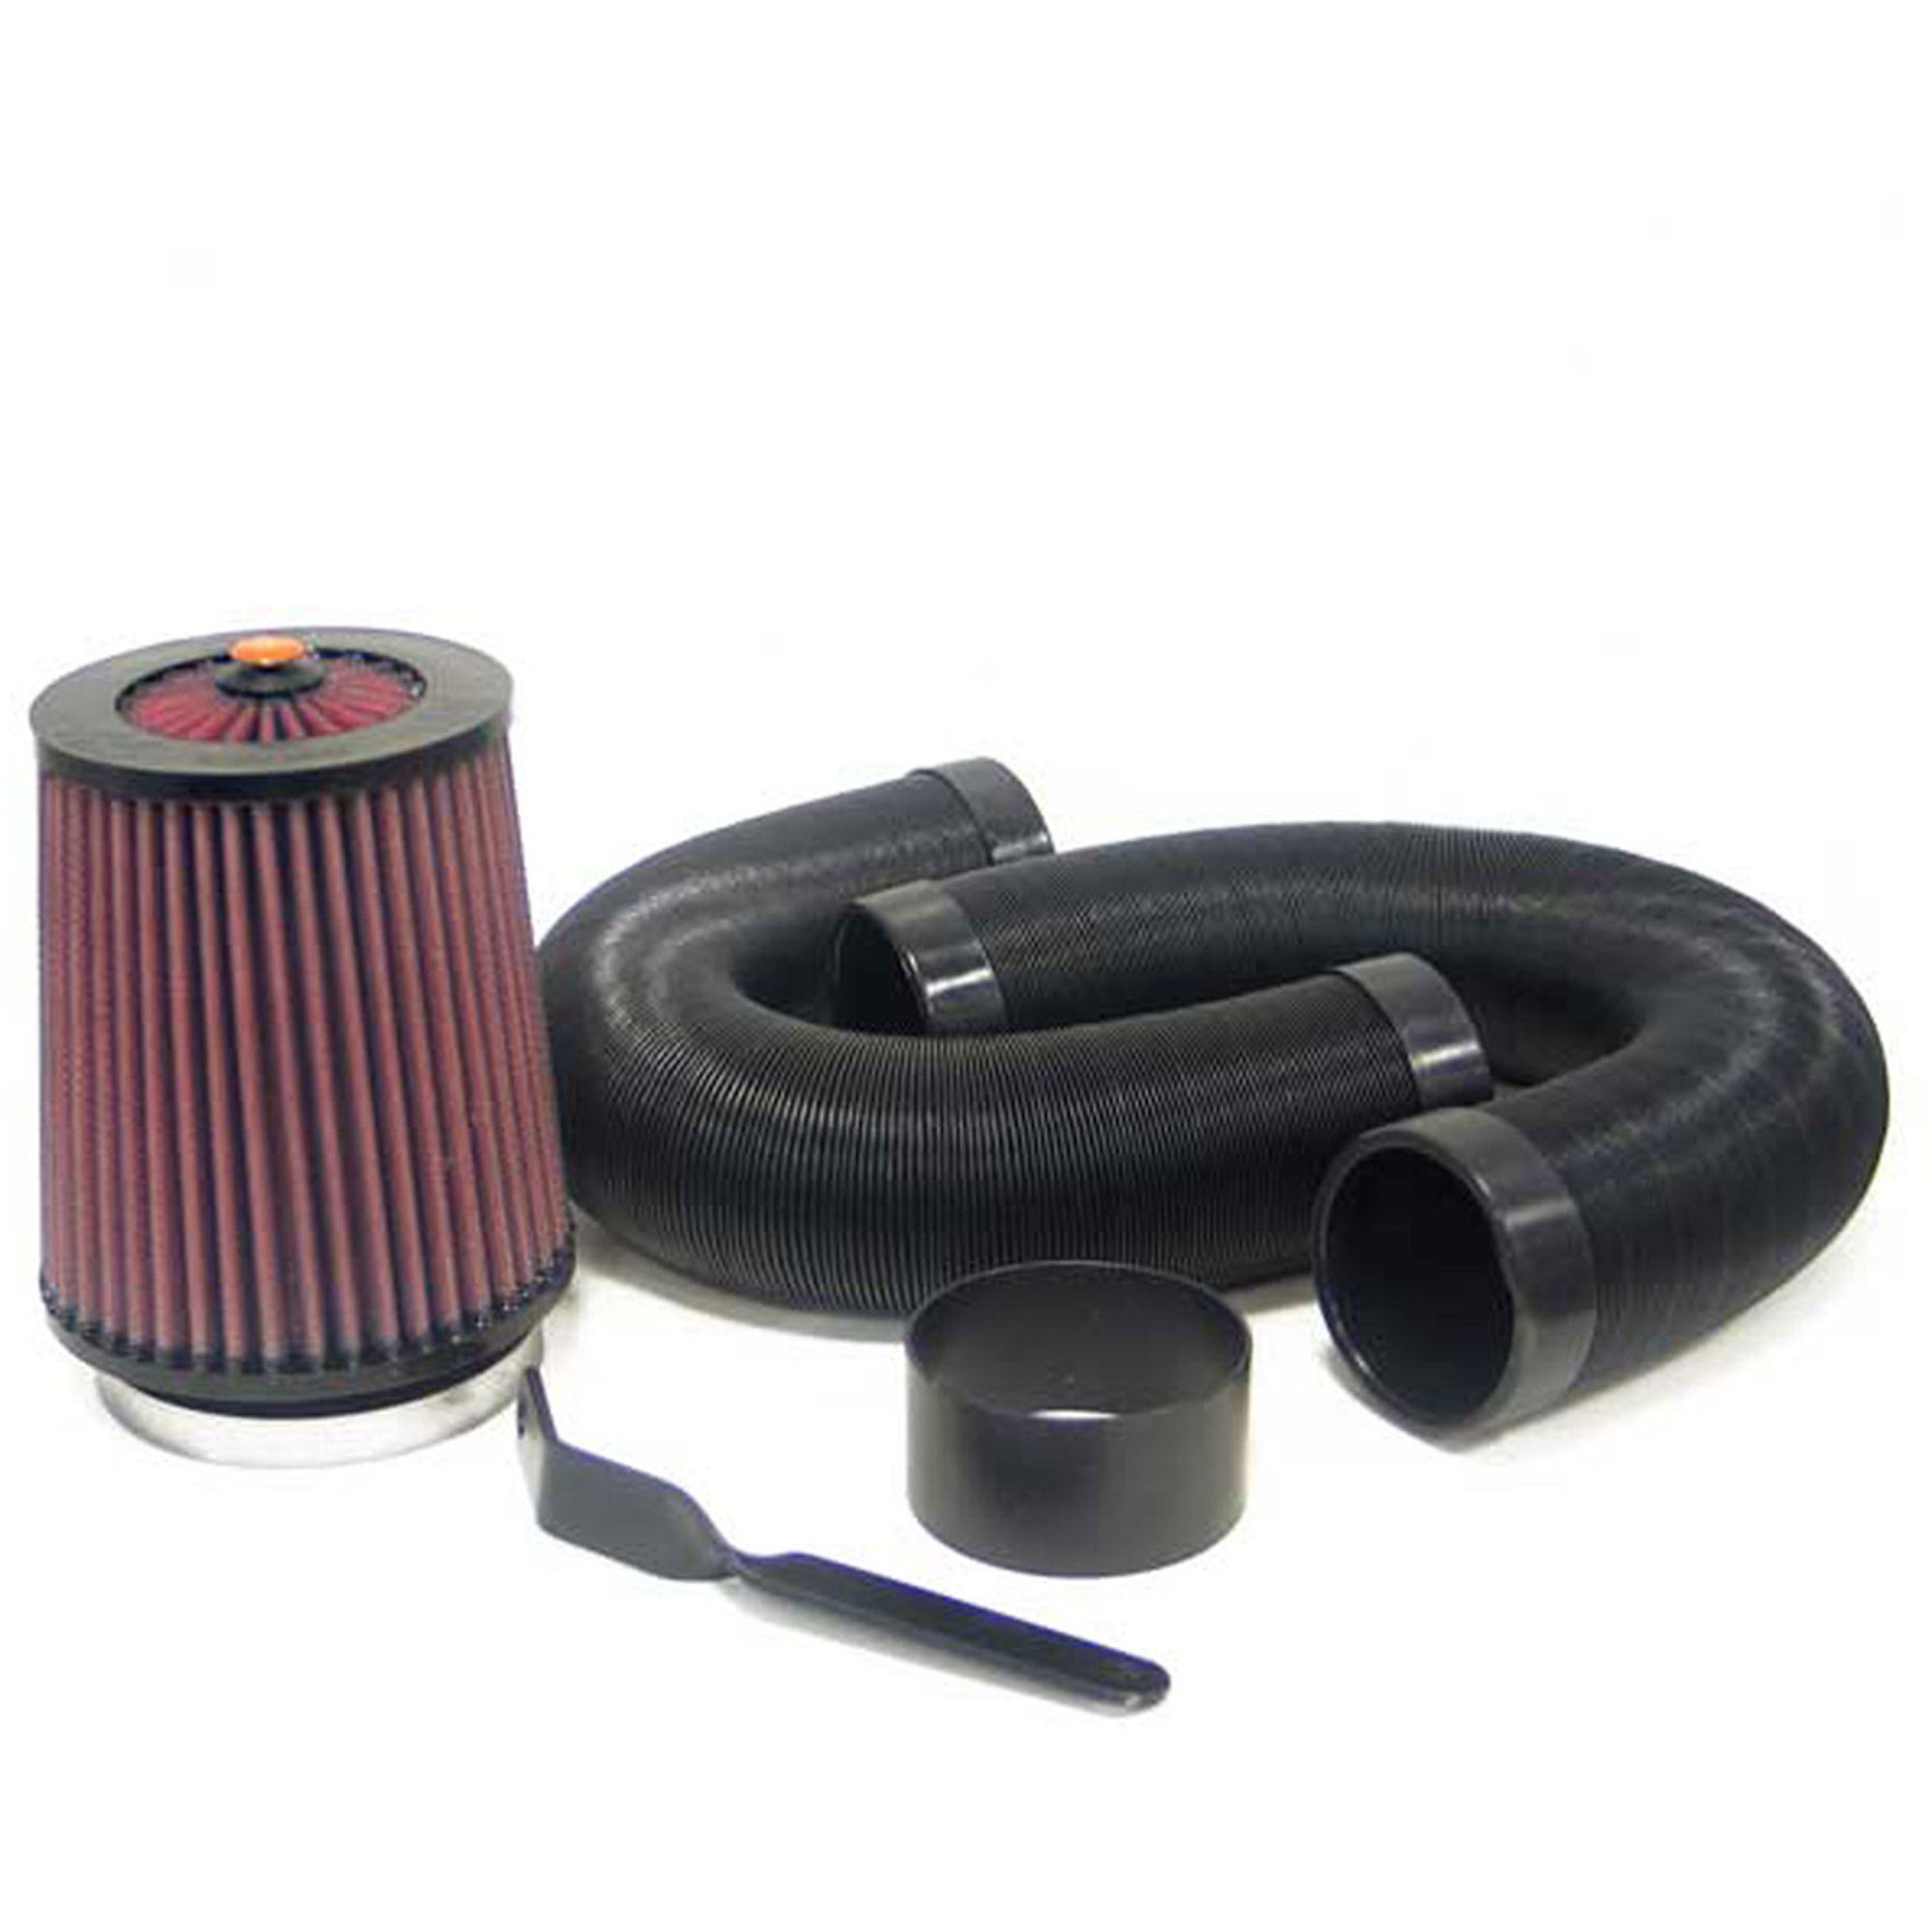 K&N Performance Intake Kit # 57-0161 (Not Avail for purchase in California)